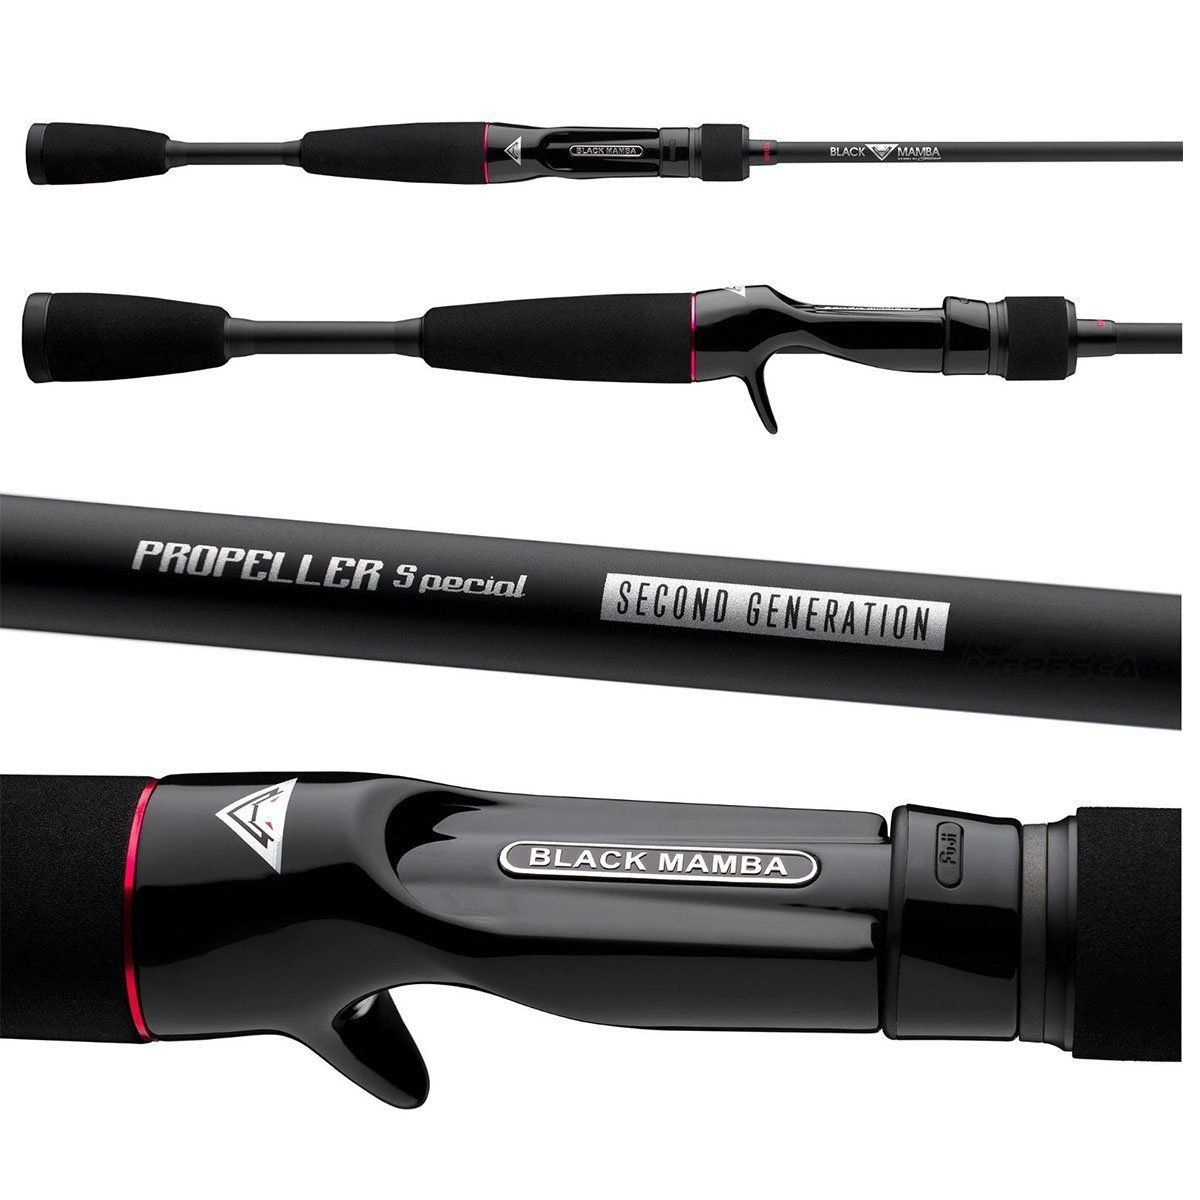 Vara Redai Black Mamba Second Gen. Carretilha 1,52m 5?8? 8-14LB